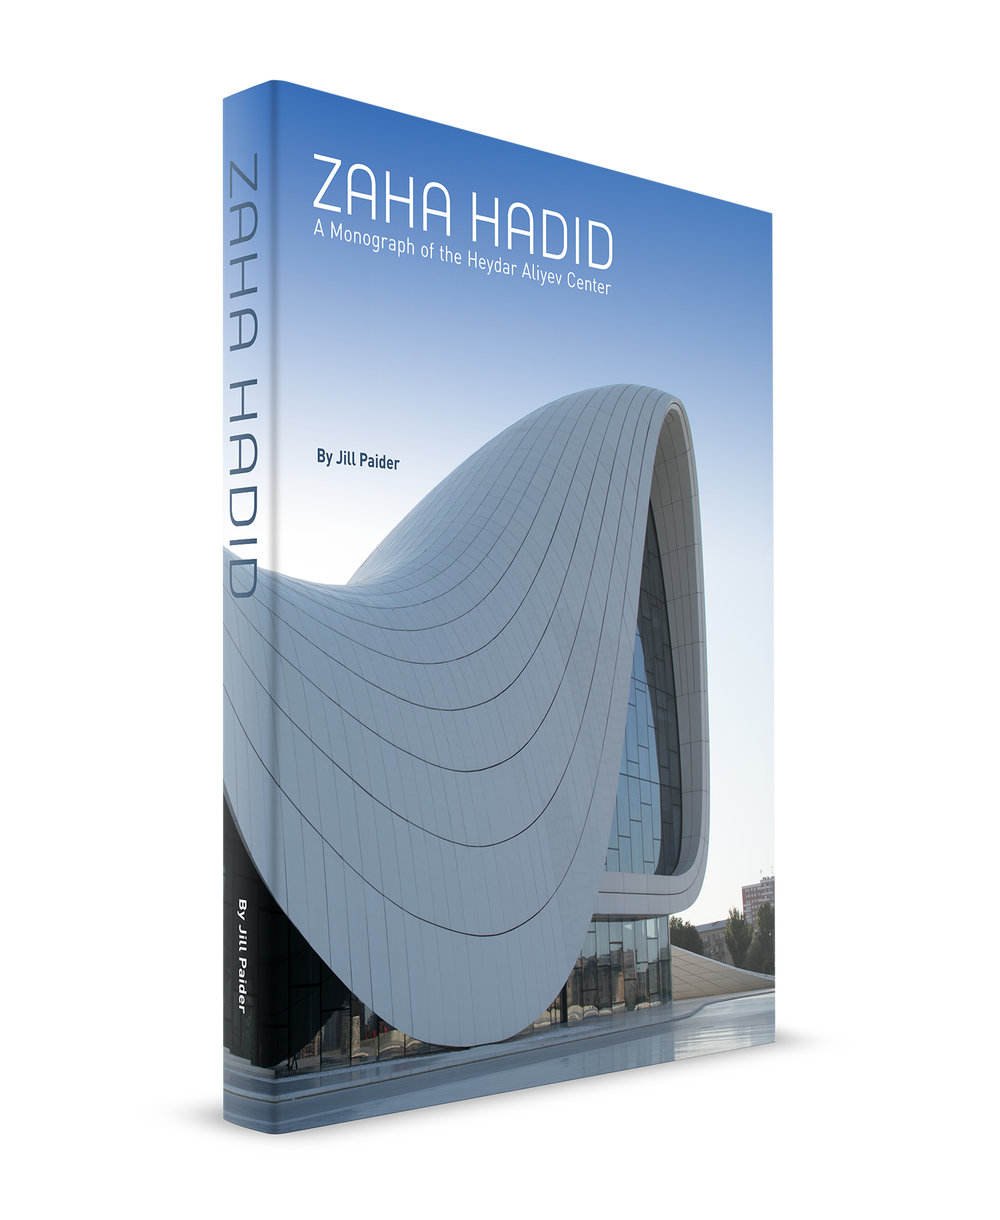 ZAHA HADID - LIMITED EDITION